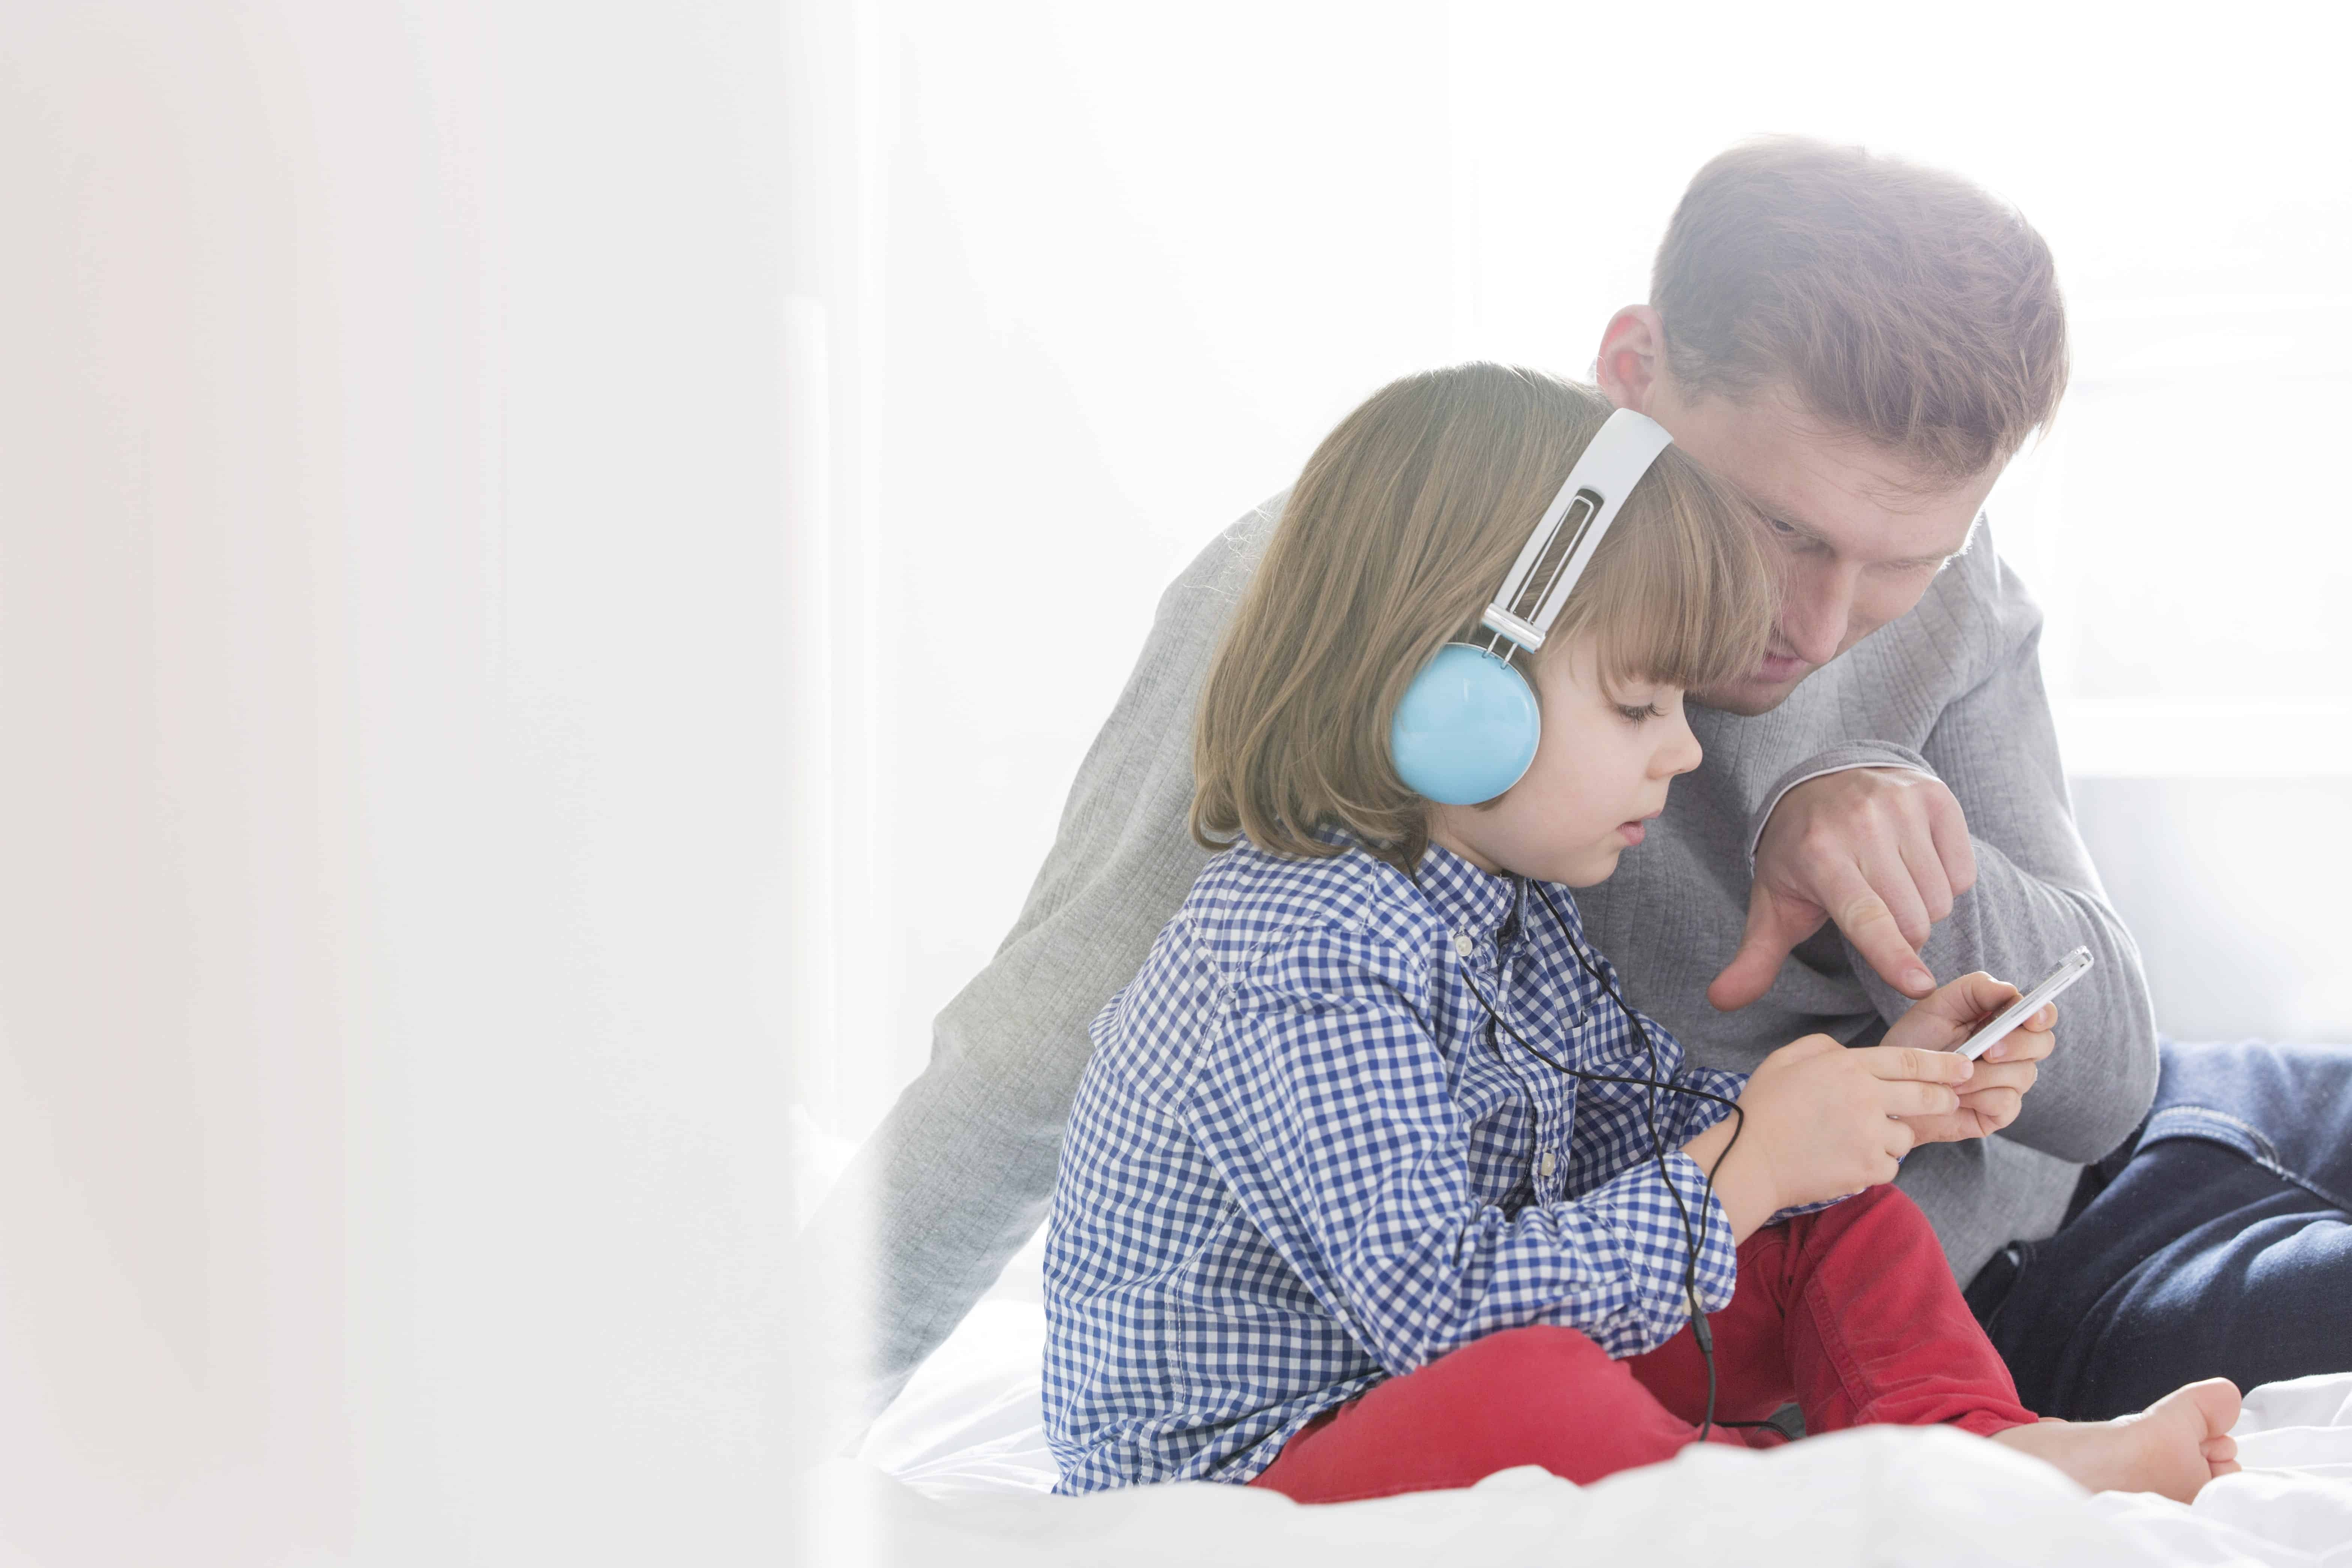 Child with headphones listening to music with father